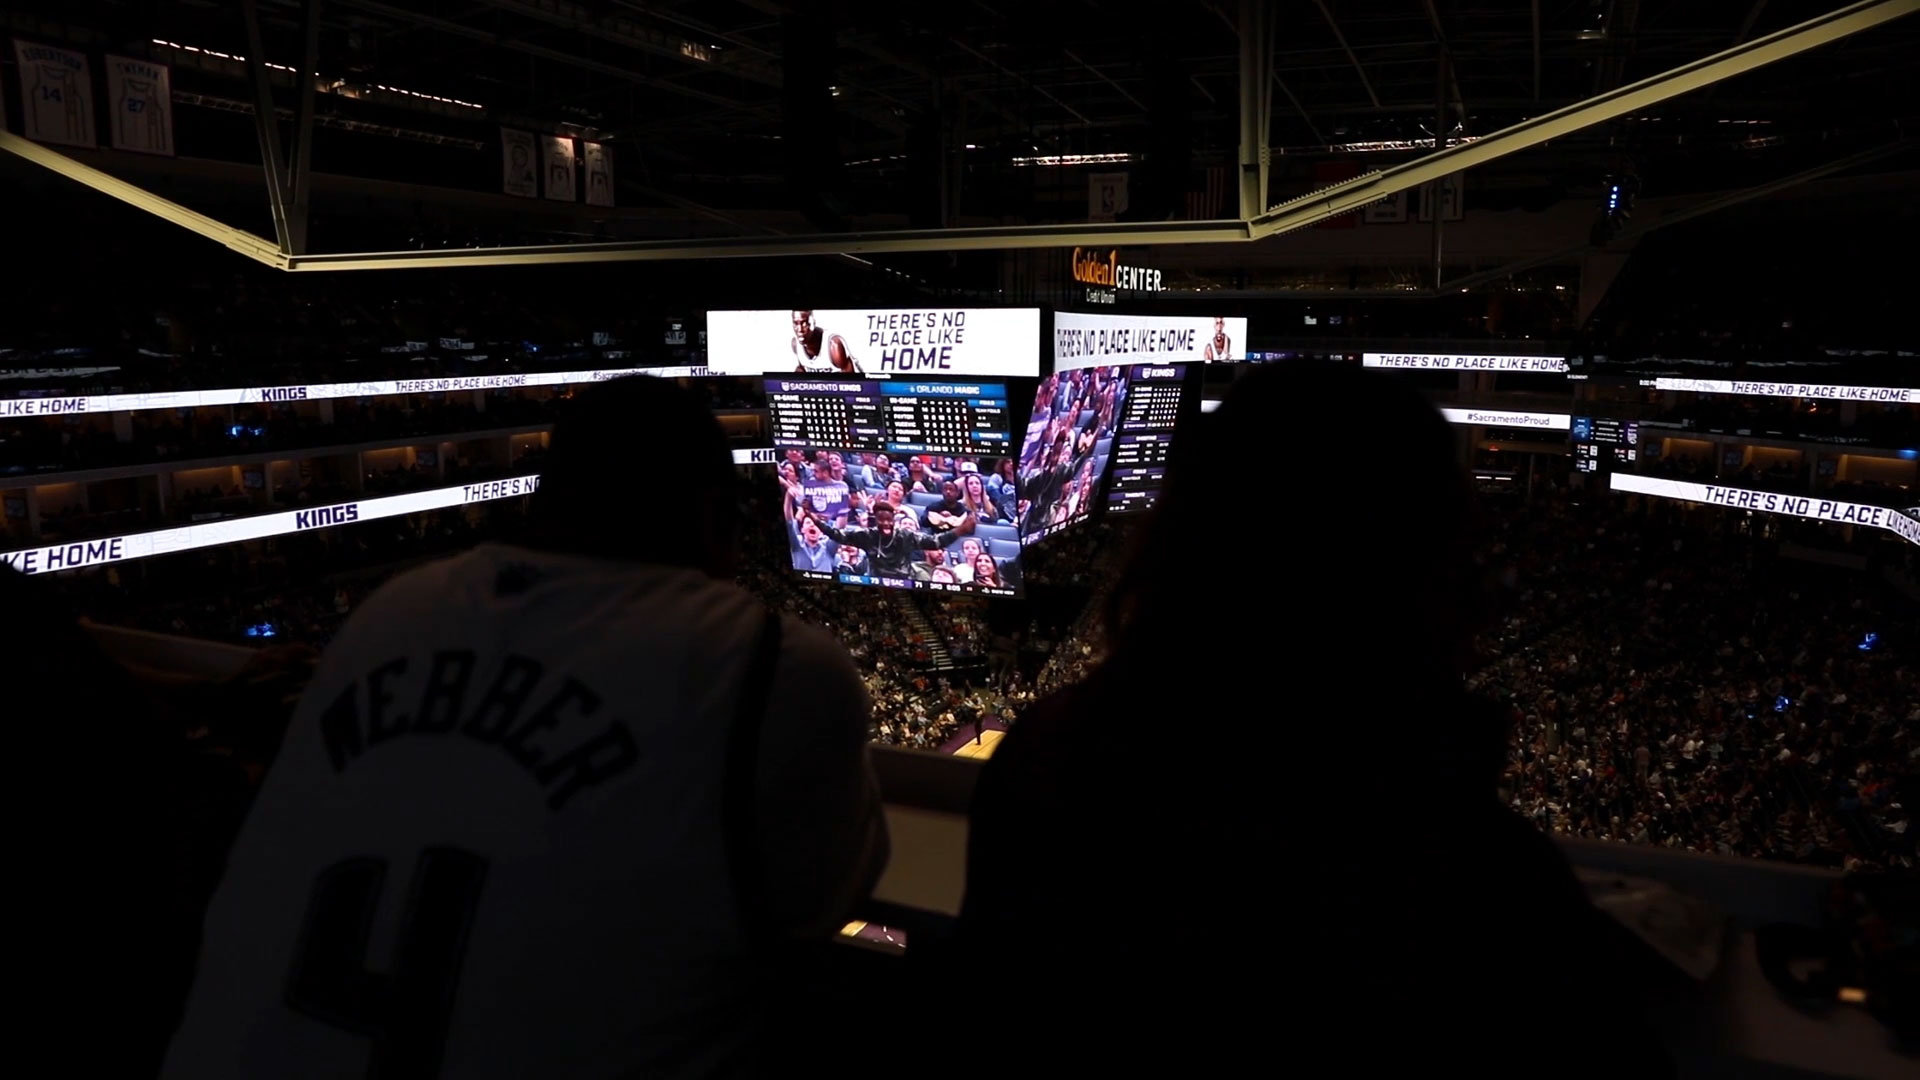 Live Events - We completed all of the sponsor-activation animations to go in the brand new Golden 1 Center for the Sacramento Kings NBA team. These animations play on every LED screen within the arena during the games. We also created separate animations for special events as well as custom content for the jumbotron screen.